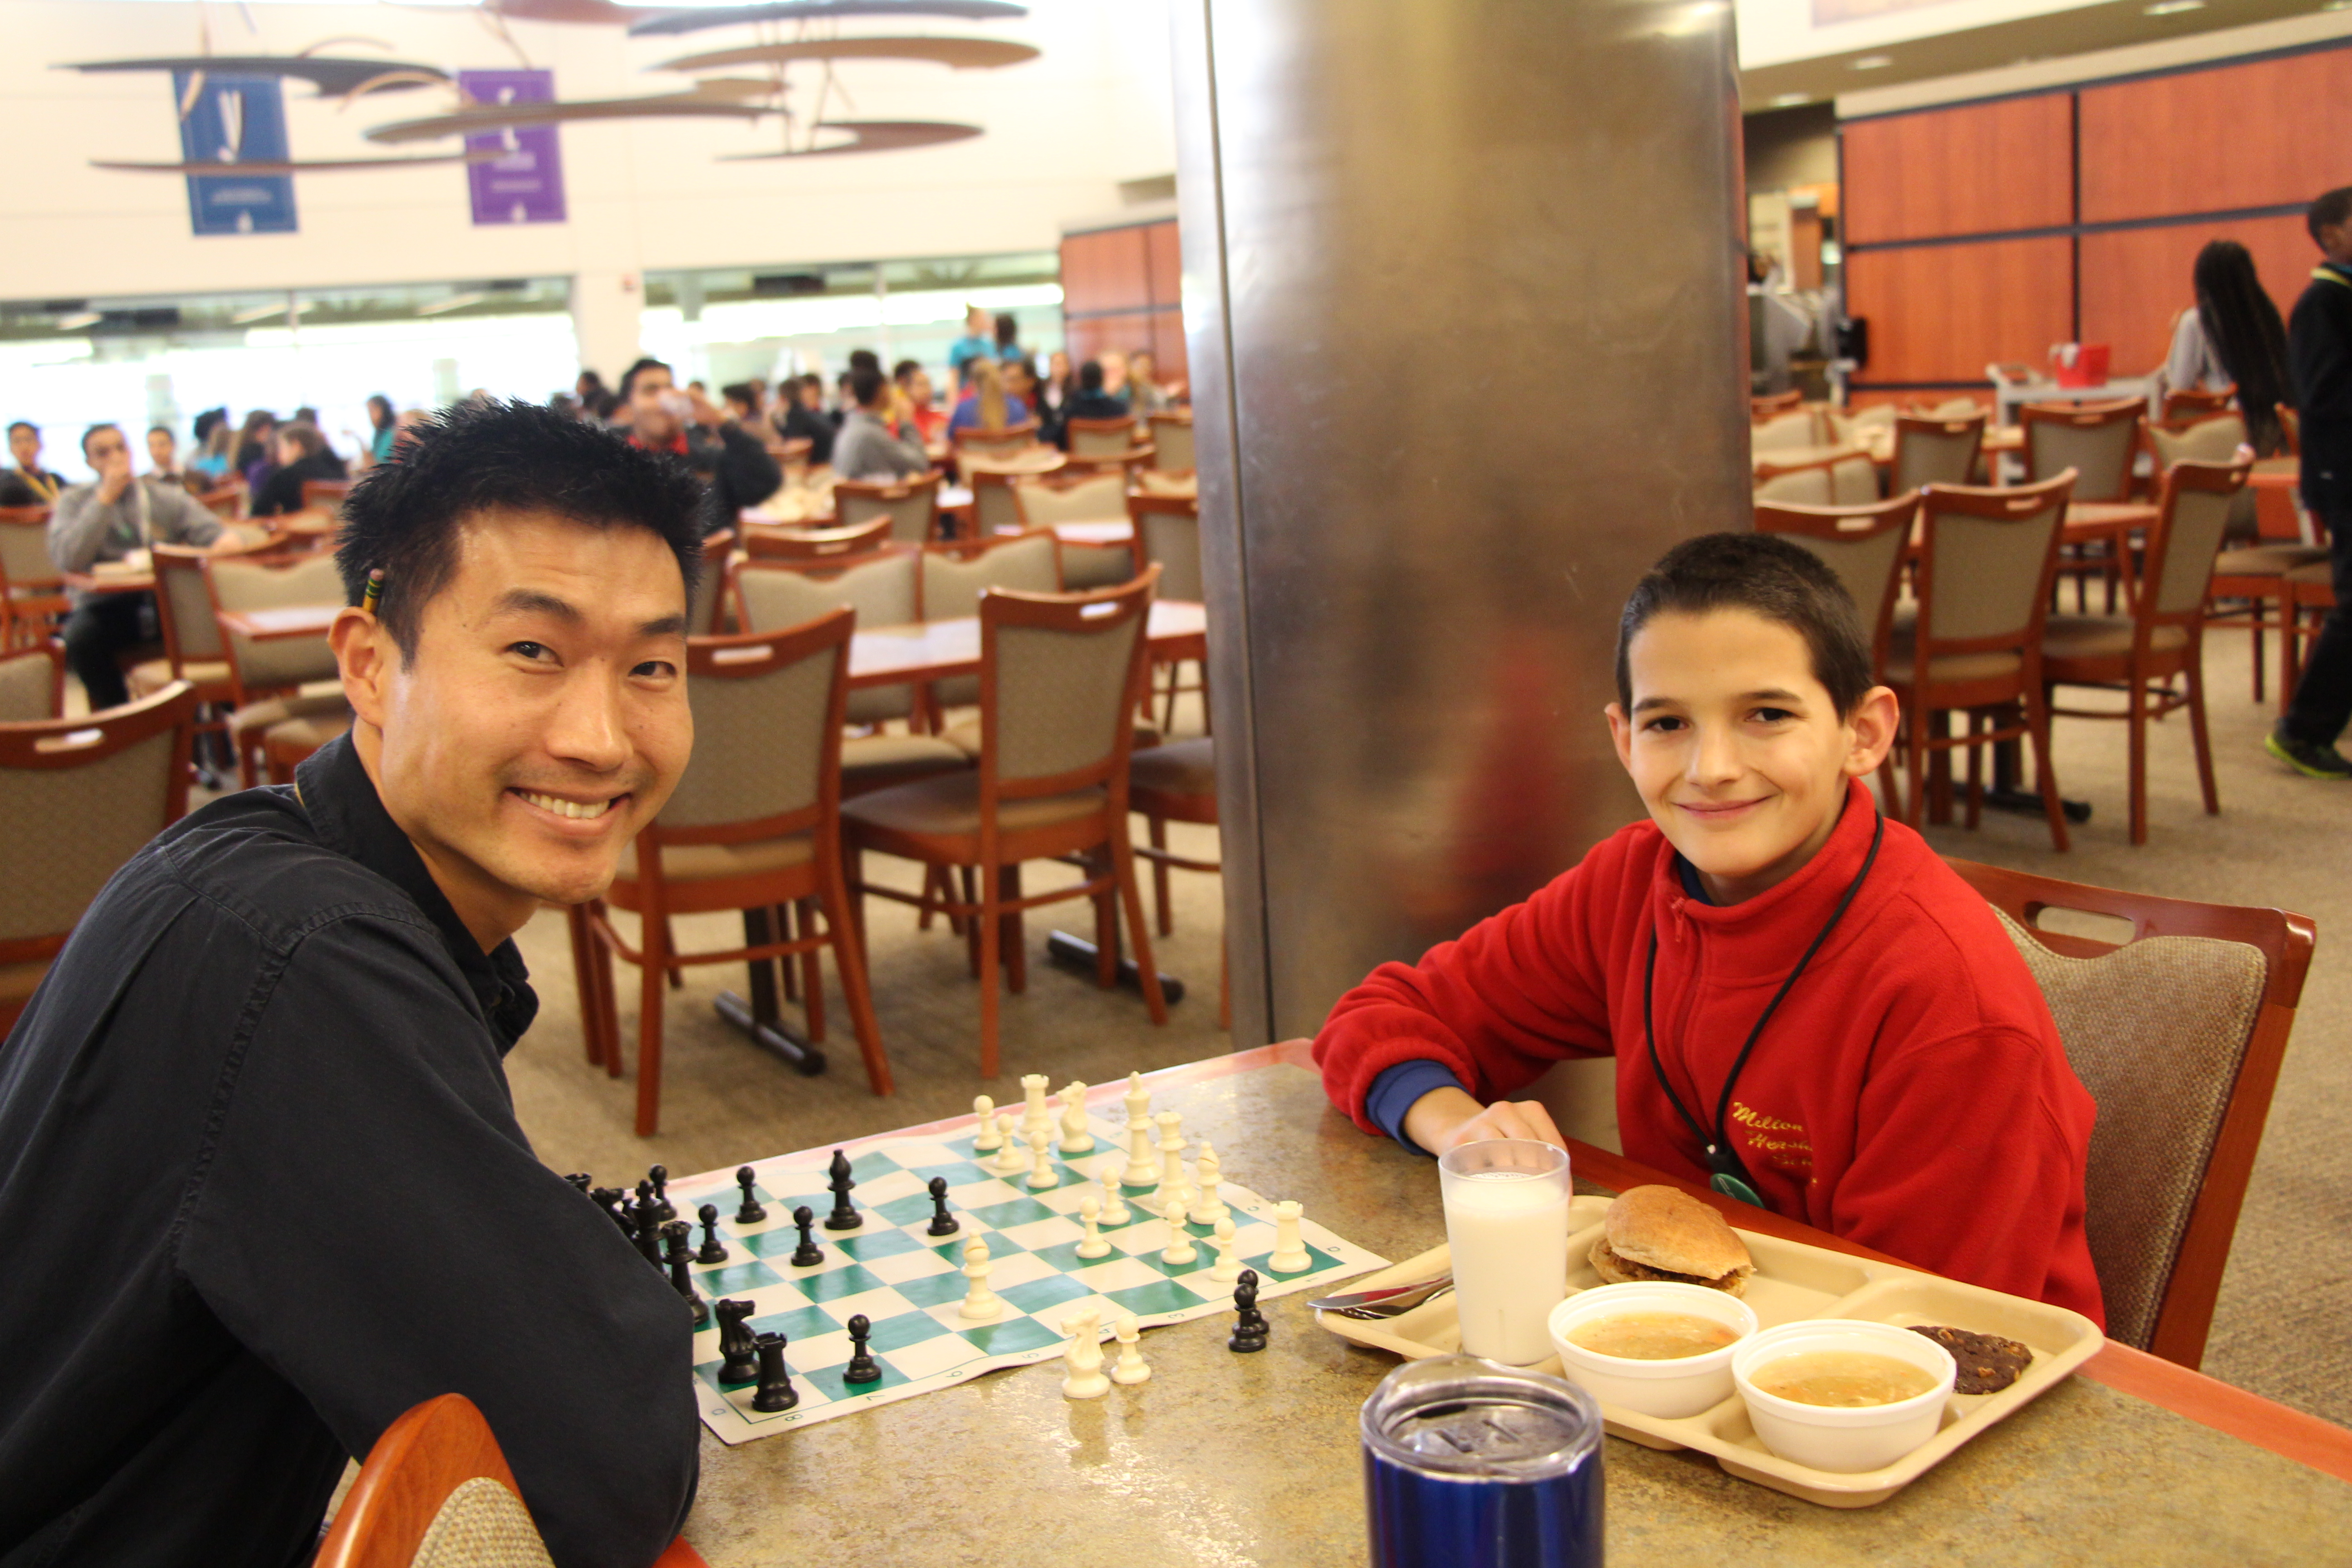 MHS teacher and student playing chess at lunch